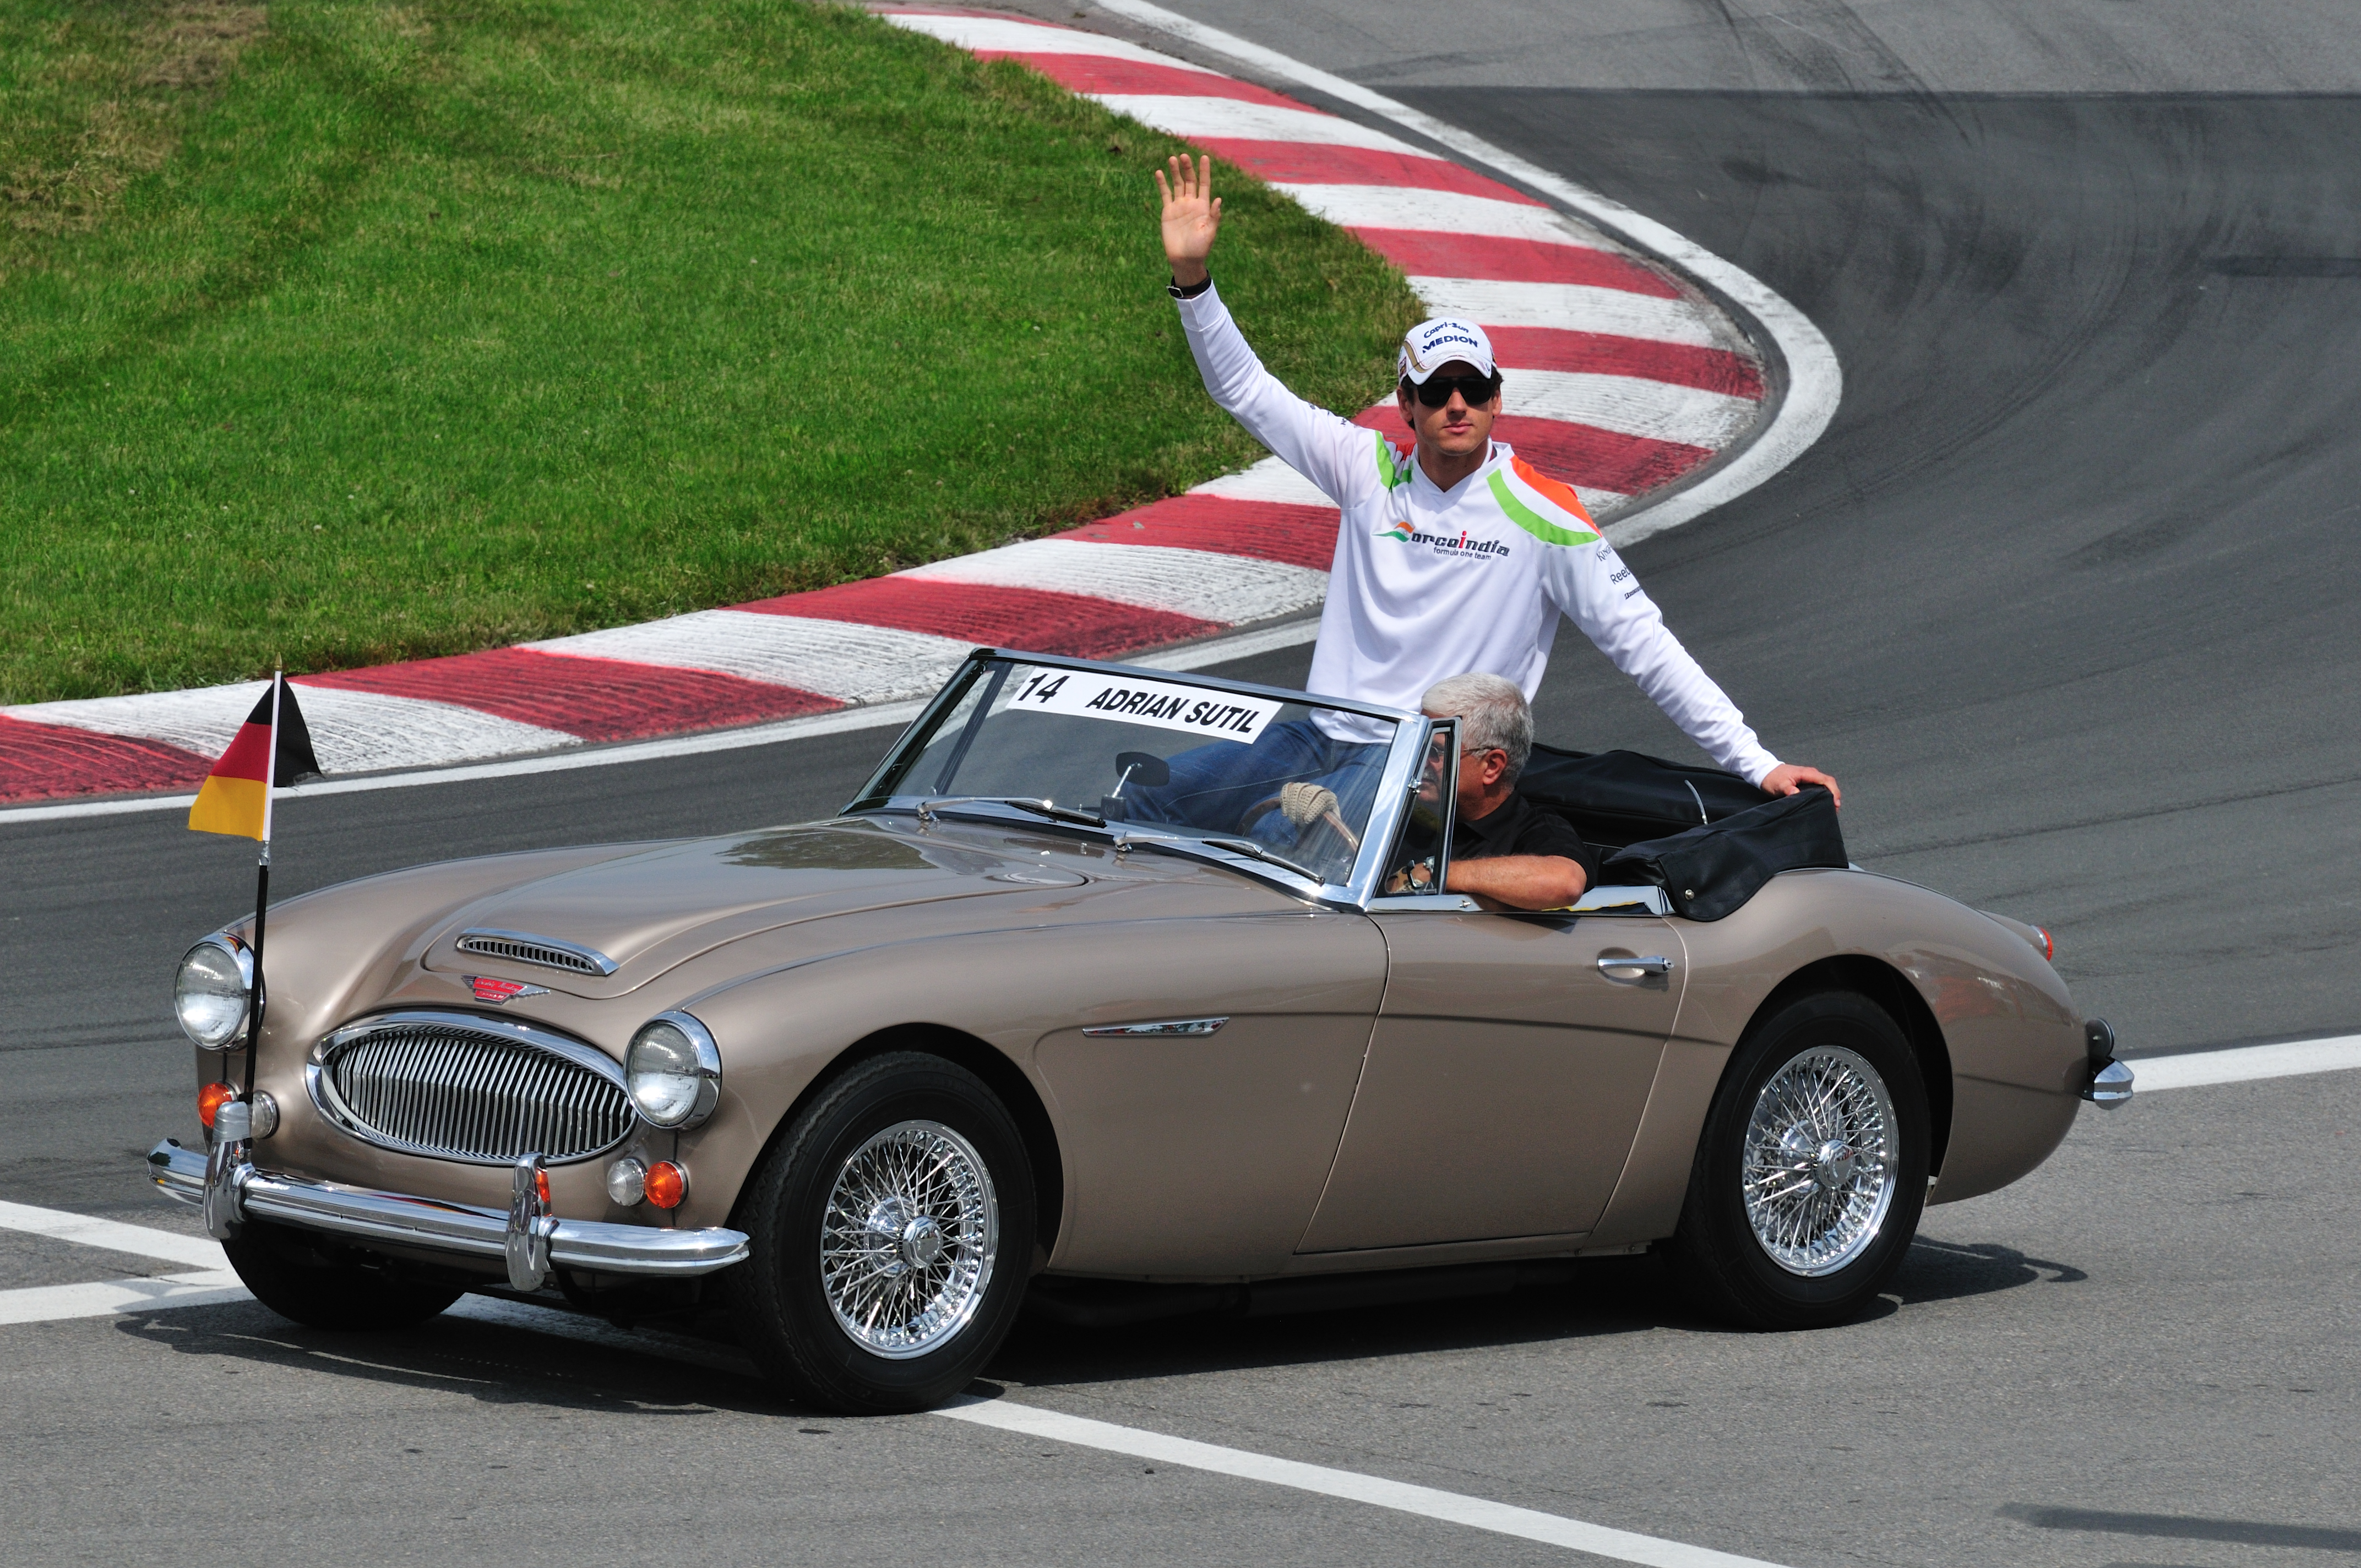 F1 2018 Wikipedia >> File:F1 Drivers Parade Adrian Sutil in an Austin Healey.jpg - Wikimedia Commons